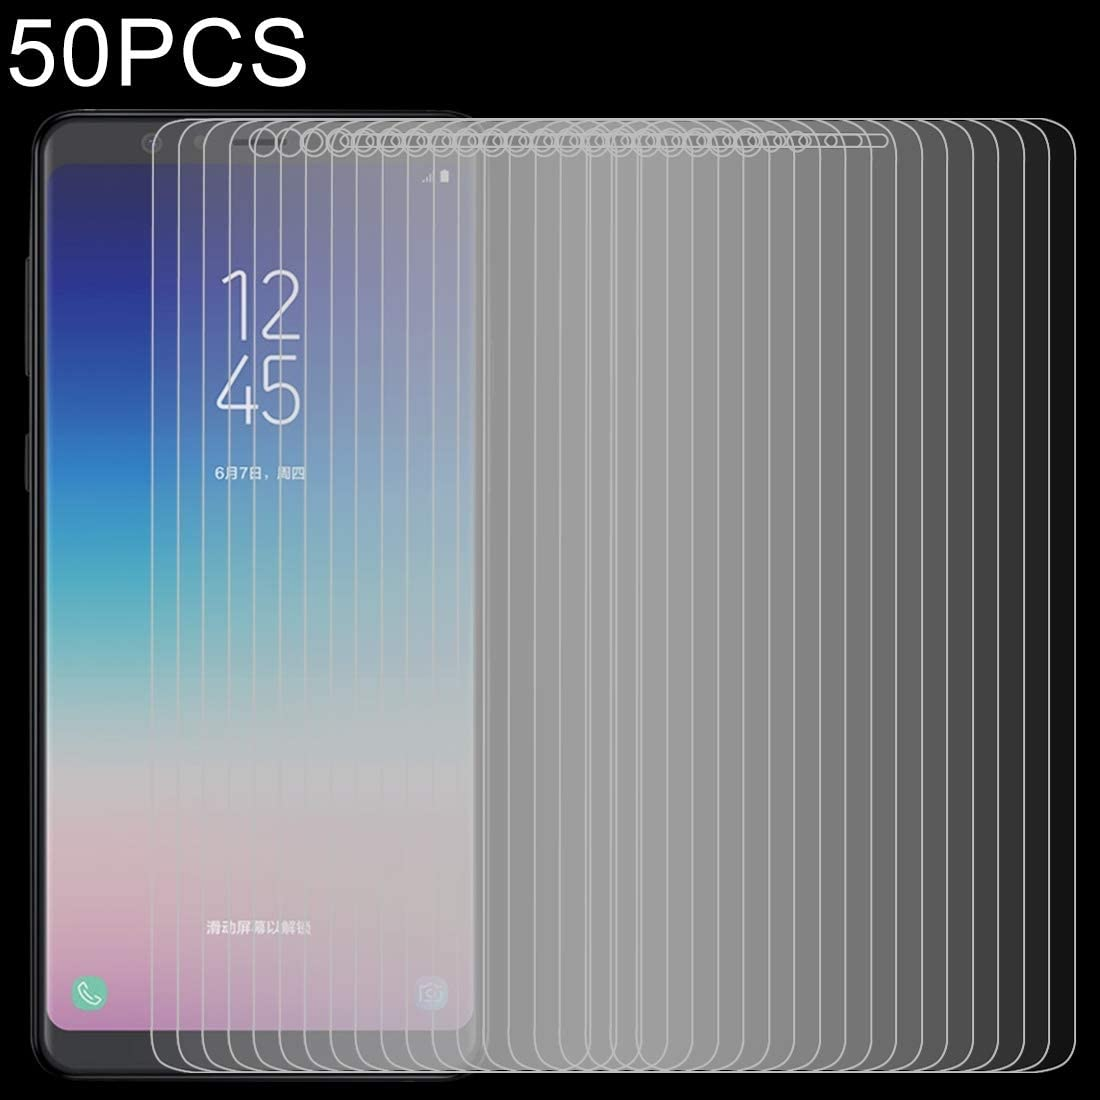 Pokjsofjnjlfkl Phone Accessories 50 PCS 0.26mm 9H 2.5D Tempered Glass Film for Galaxy A9 Star Screen Protectors for Phone